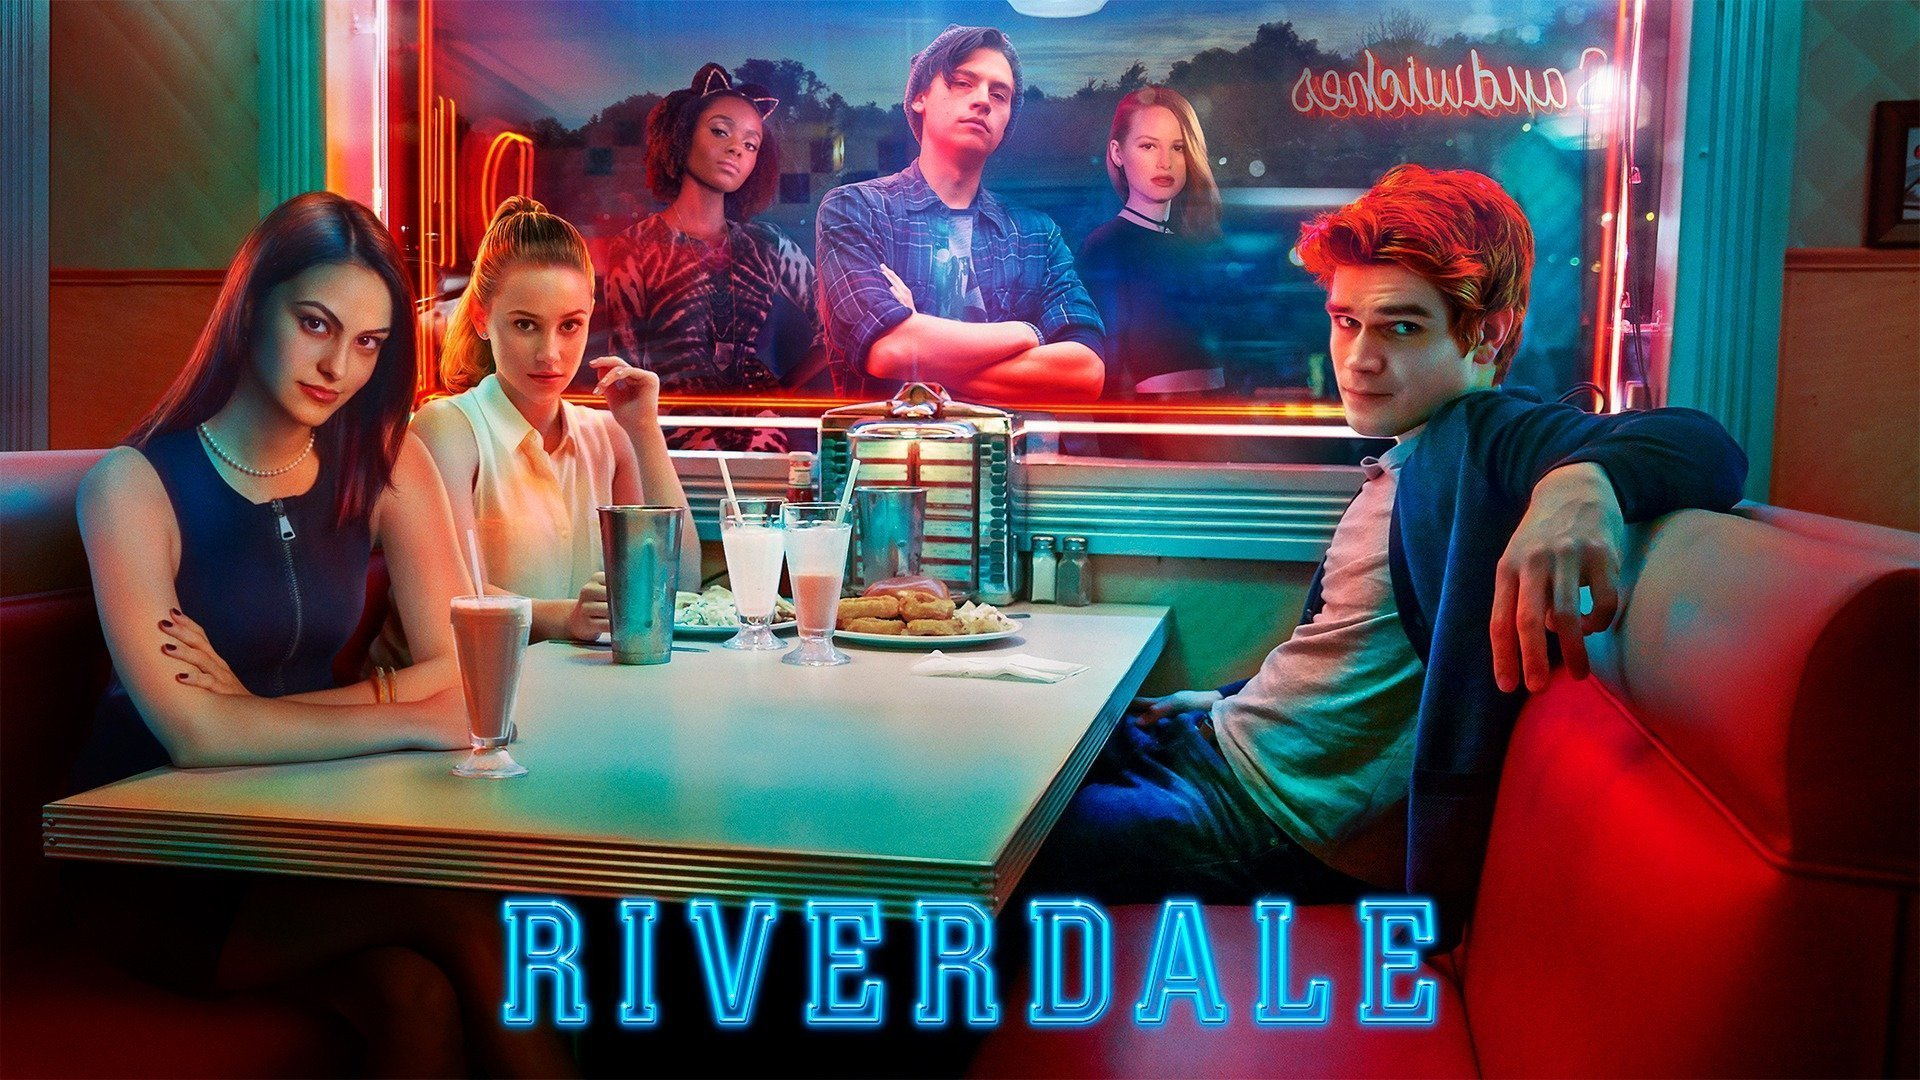 Riverdale Tv Series, HD Tv Shows, 4k Wallpapers, Images ...